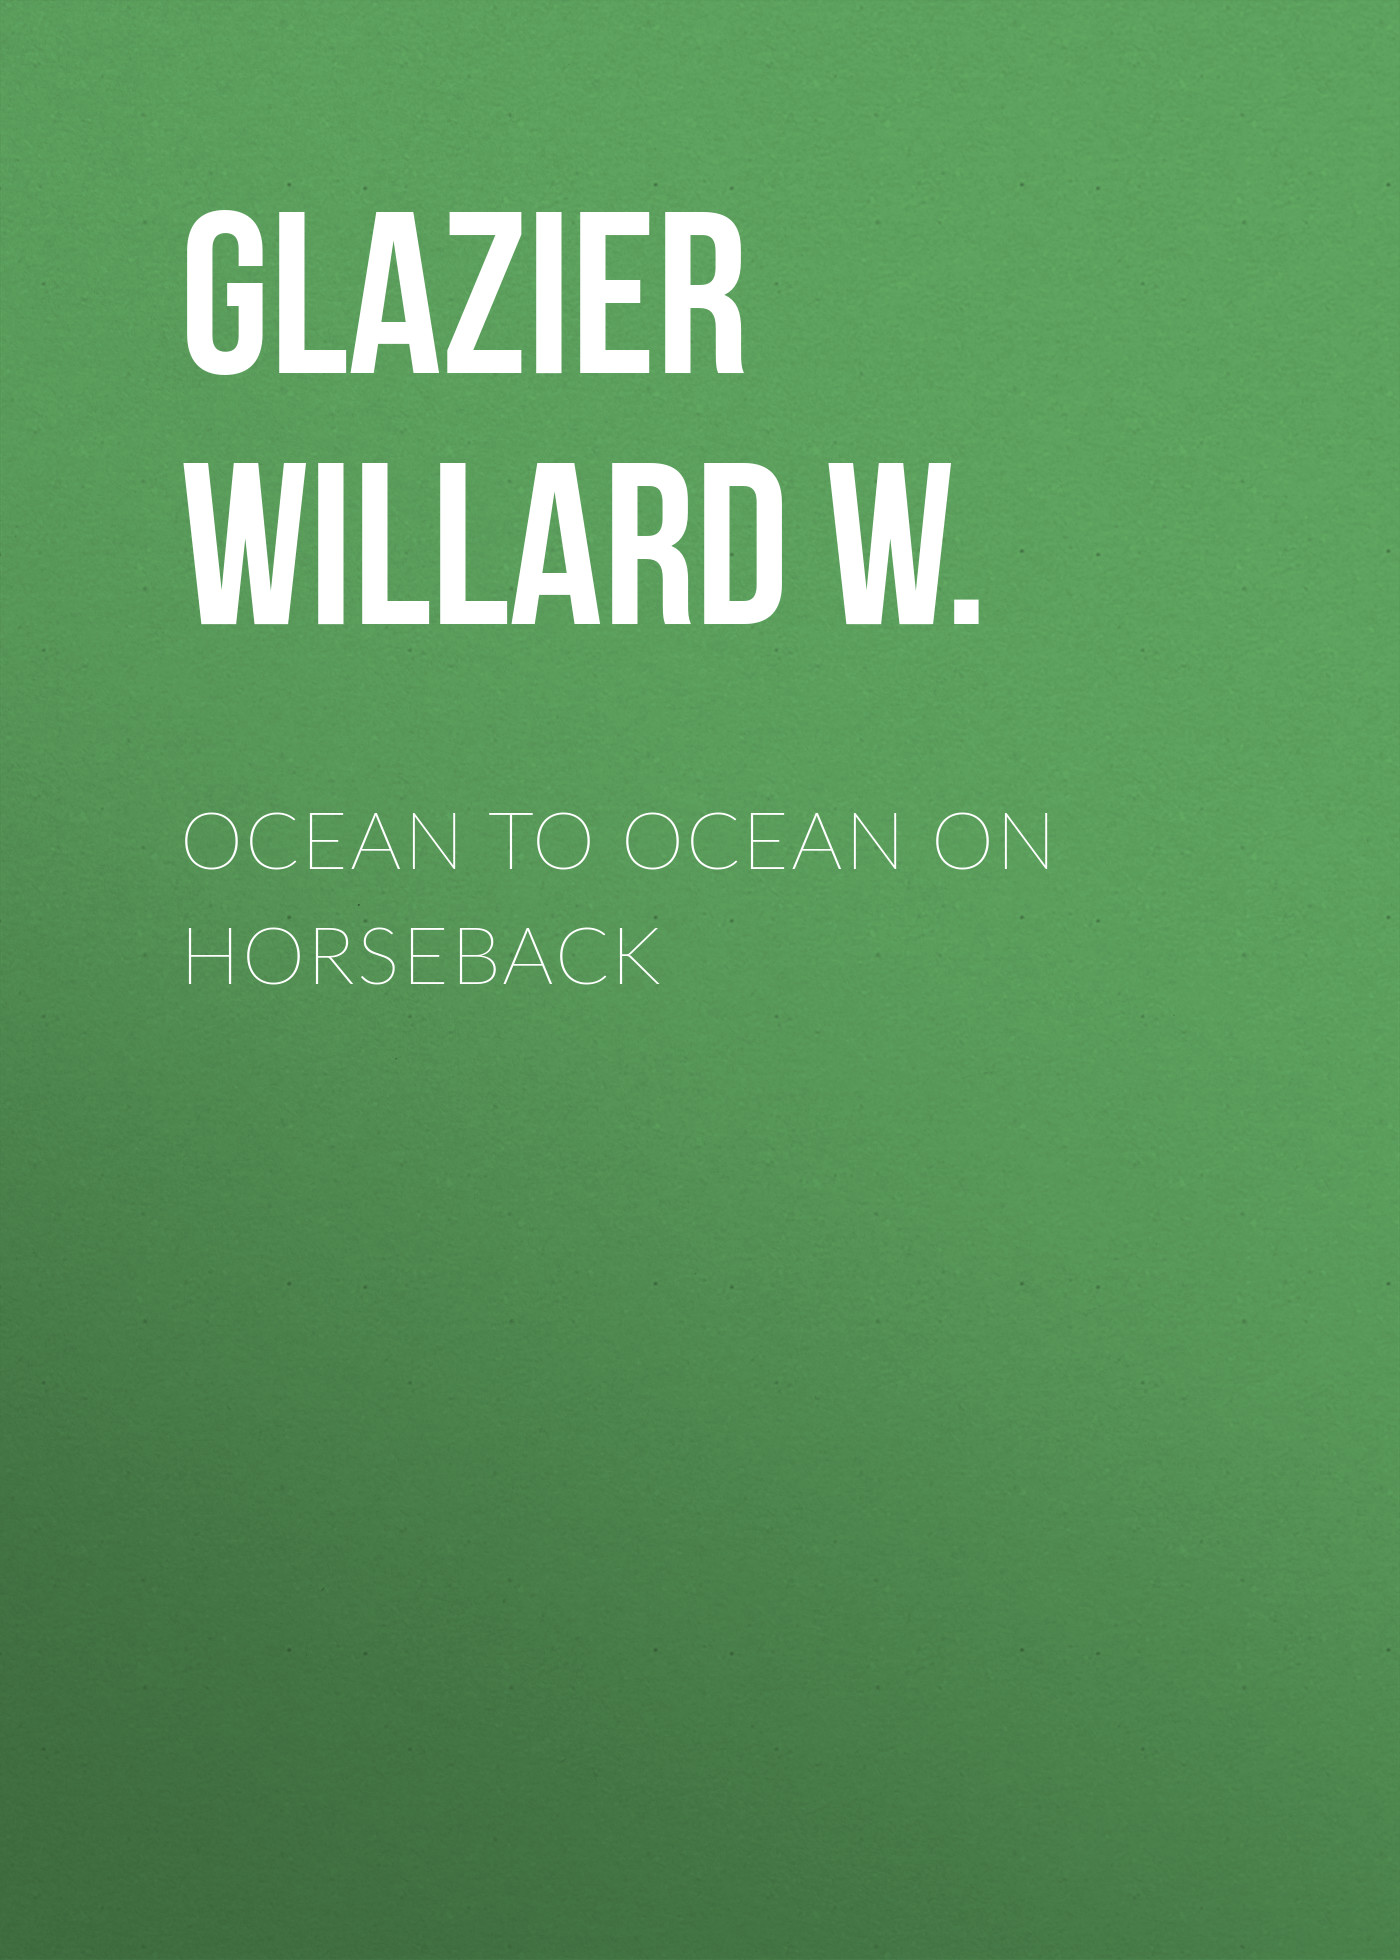 Glazier Willard W. Ocean to Ocean on Horseback